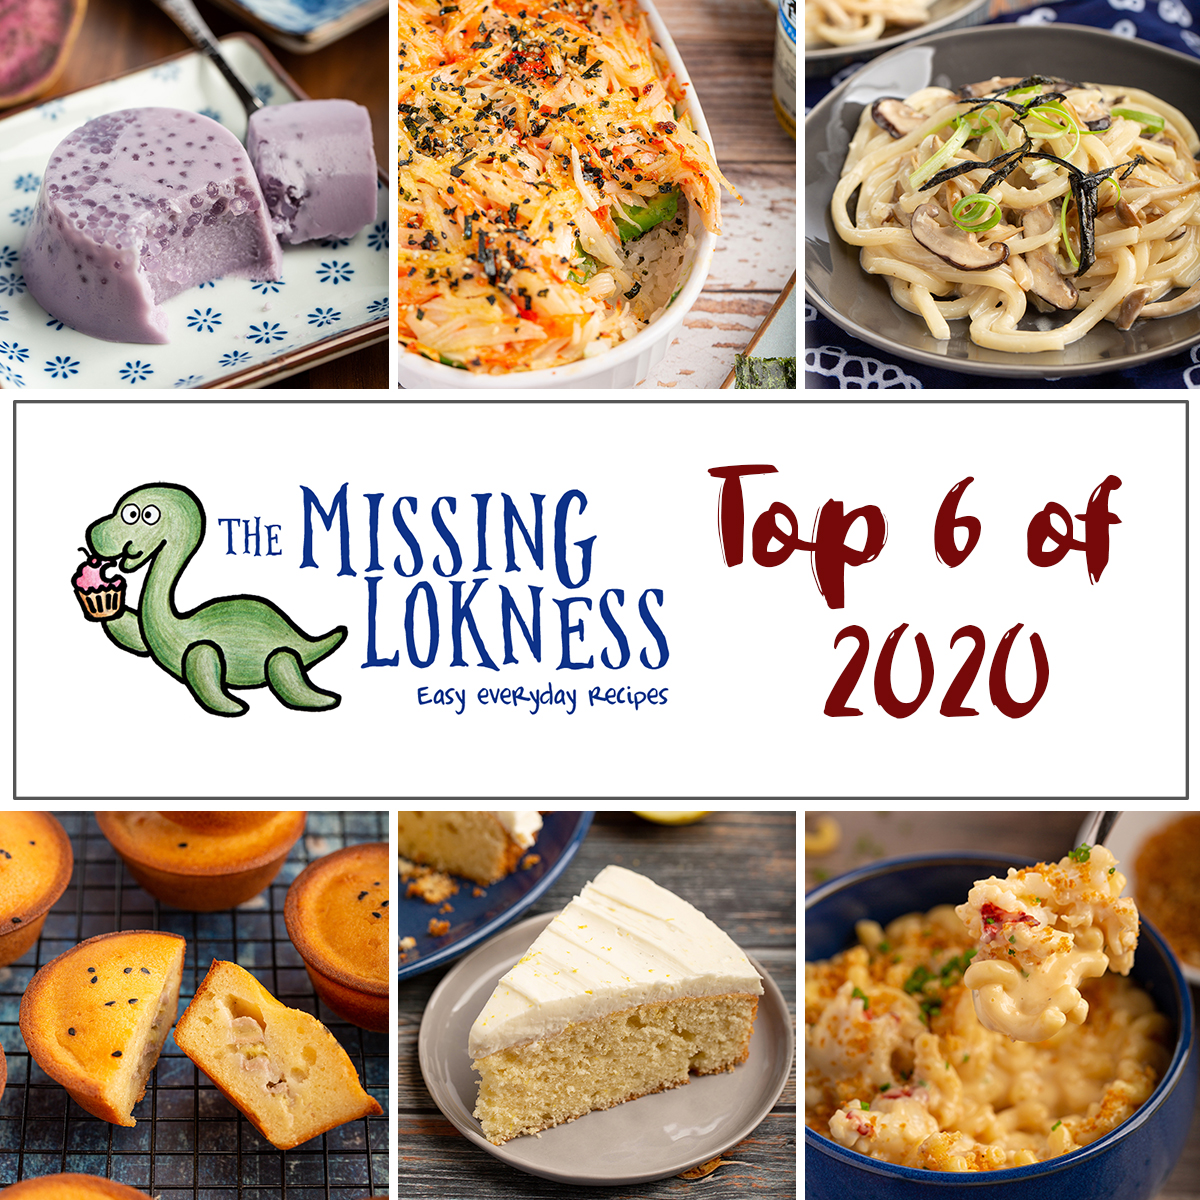 2020 Top 6 Recipes #2020 #top6 #recipe #roundup #themissinglokness | The Missing Lokness